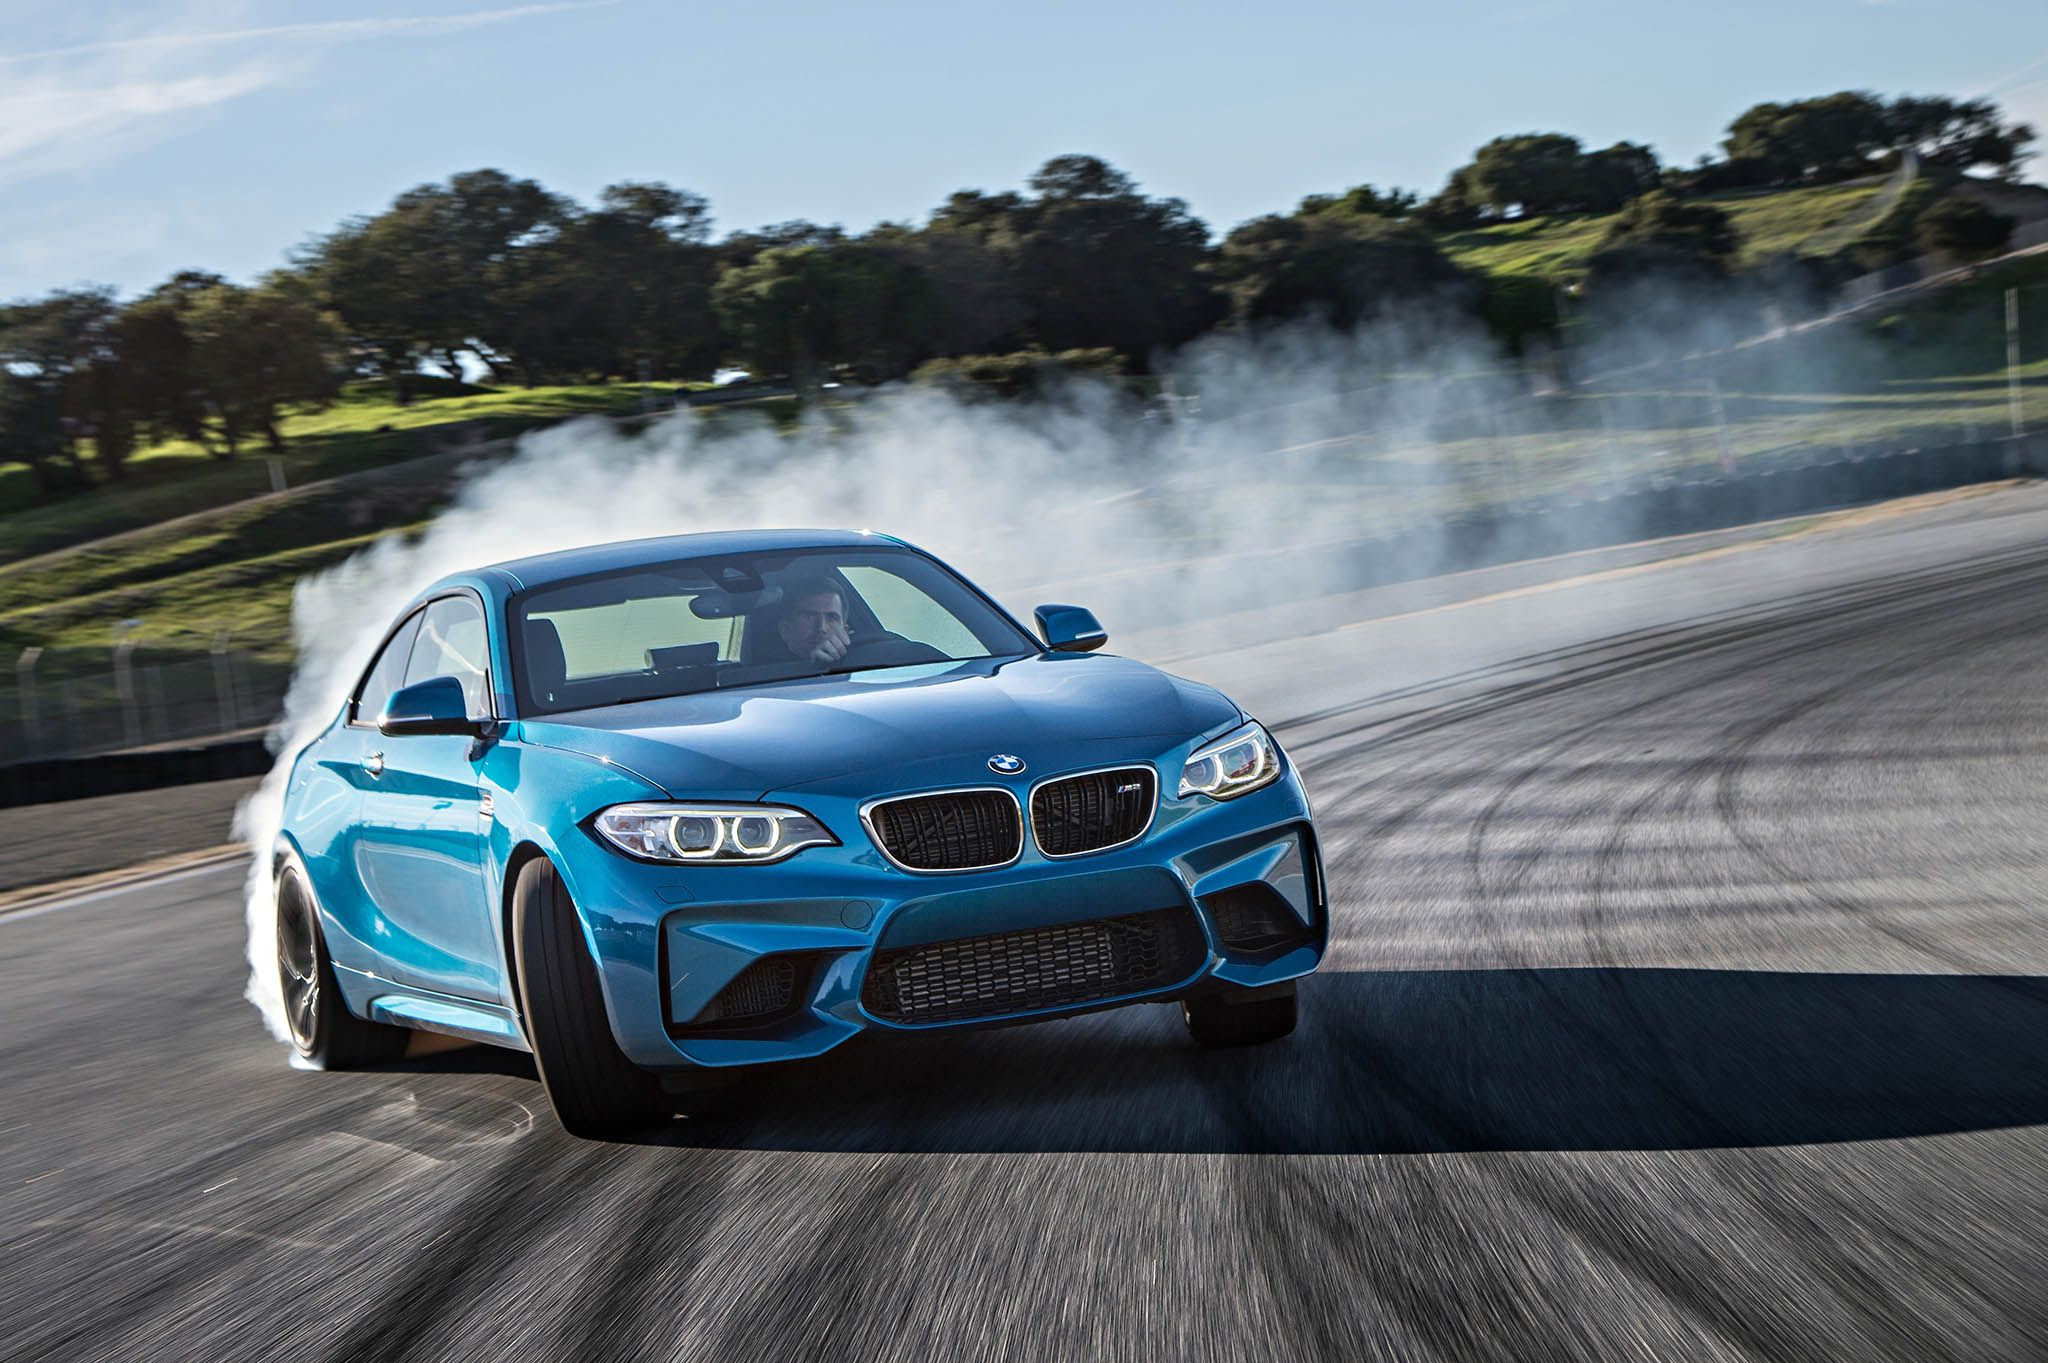 Bmw m2 powerslide bmw cars cool blue